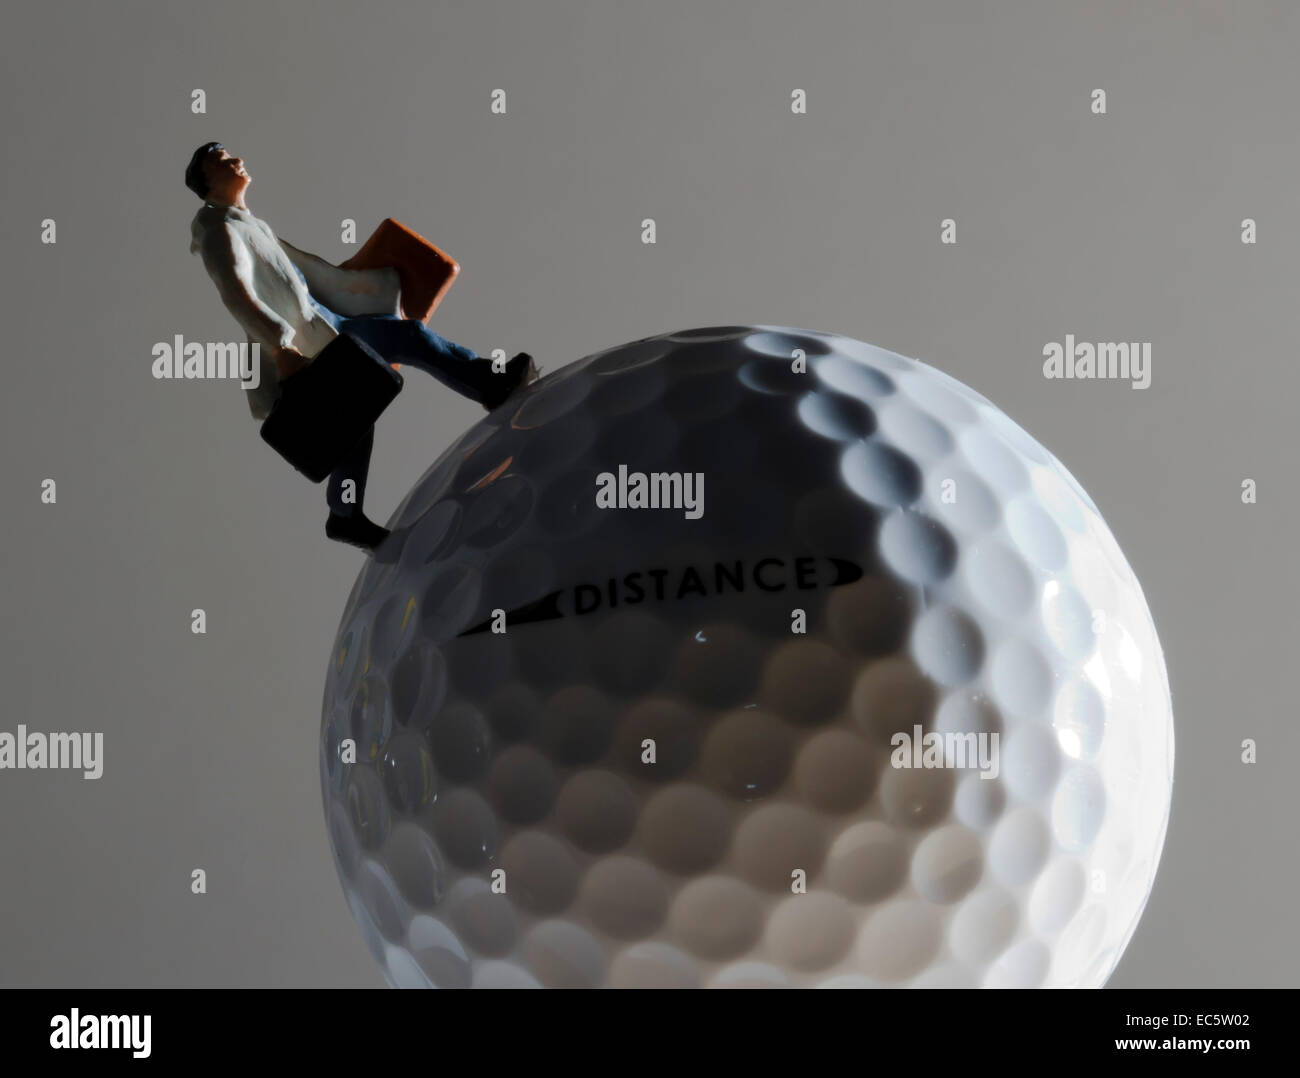 Man with lugage walking on golfball - Stock Image